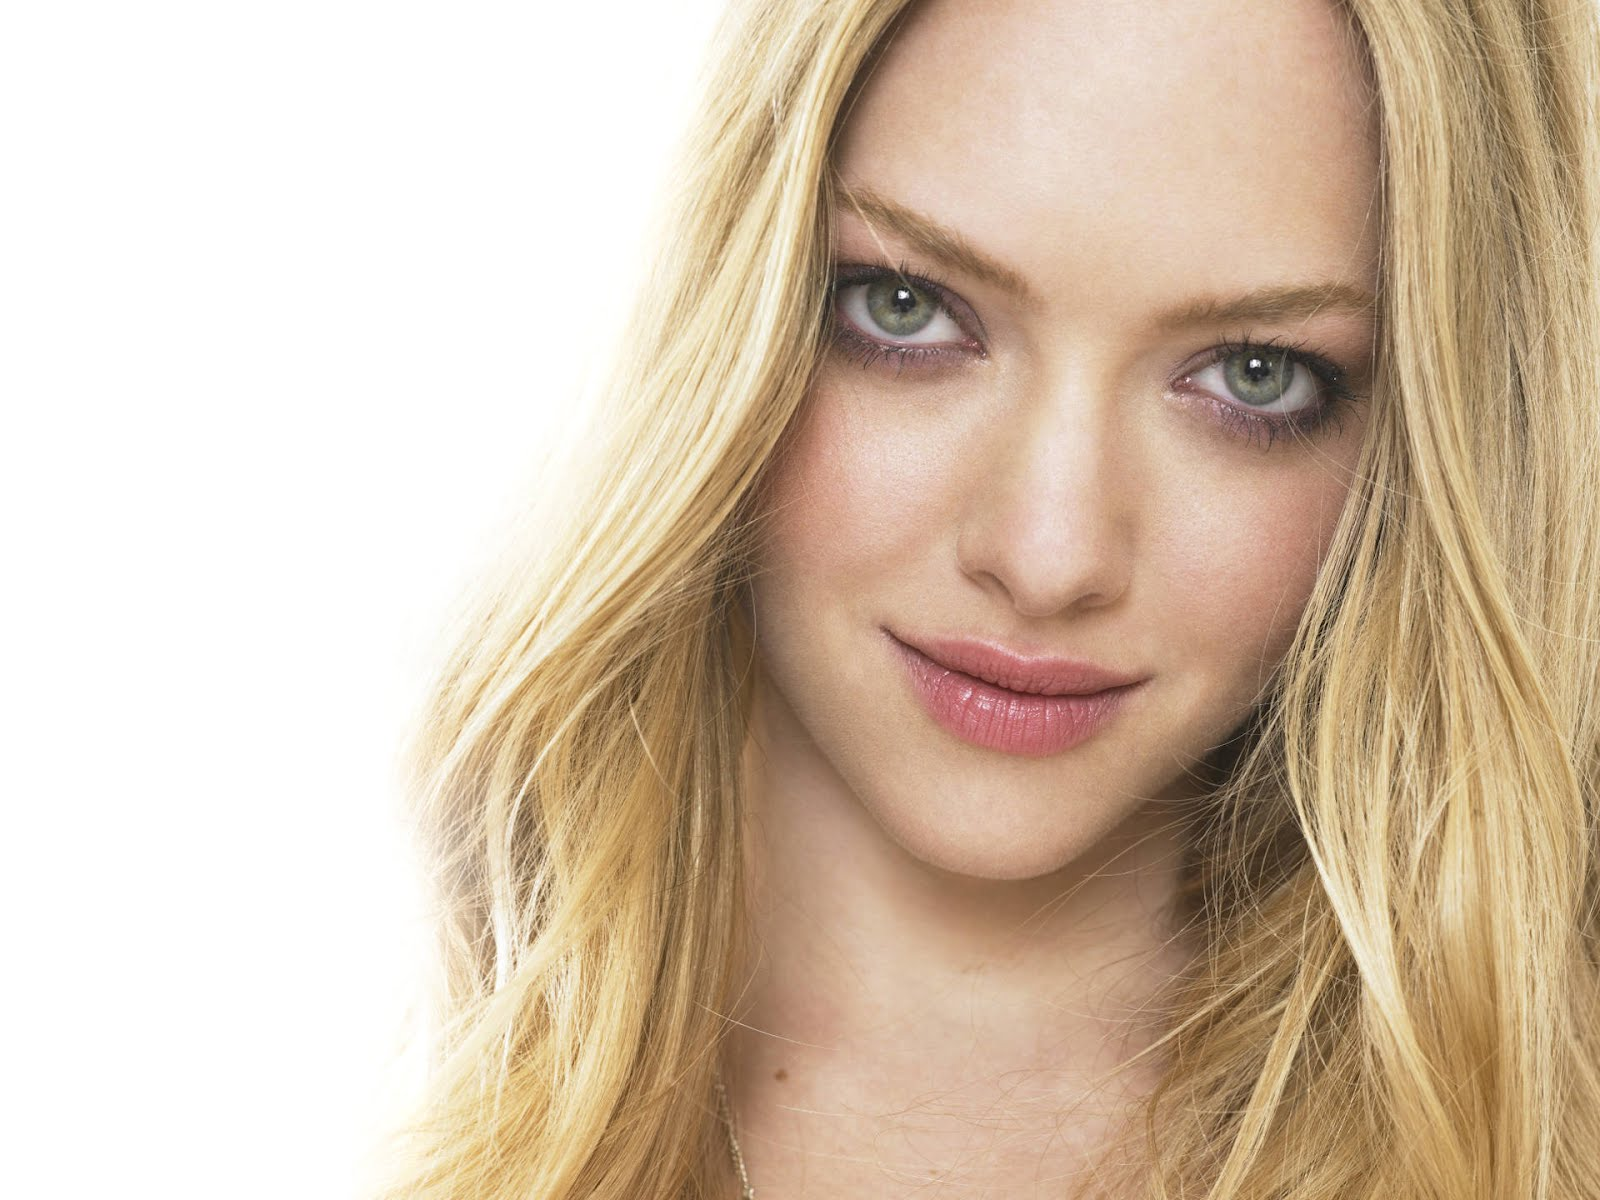 Amanda Seyfried 173 Success Facts - Everything you need to know about Amanda Seyfried